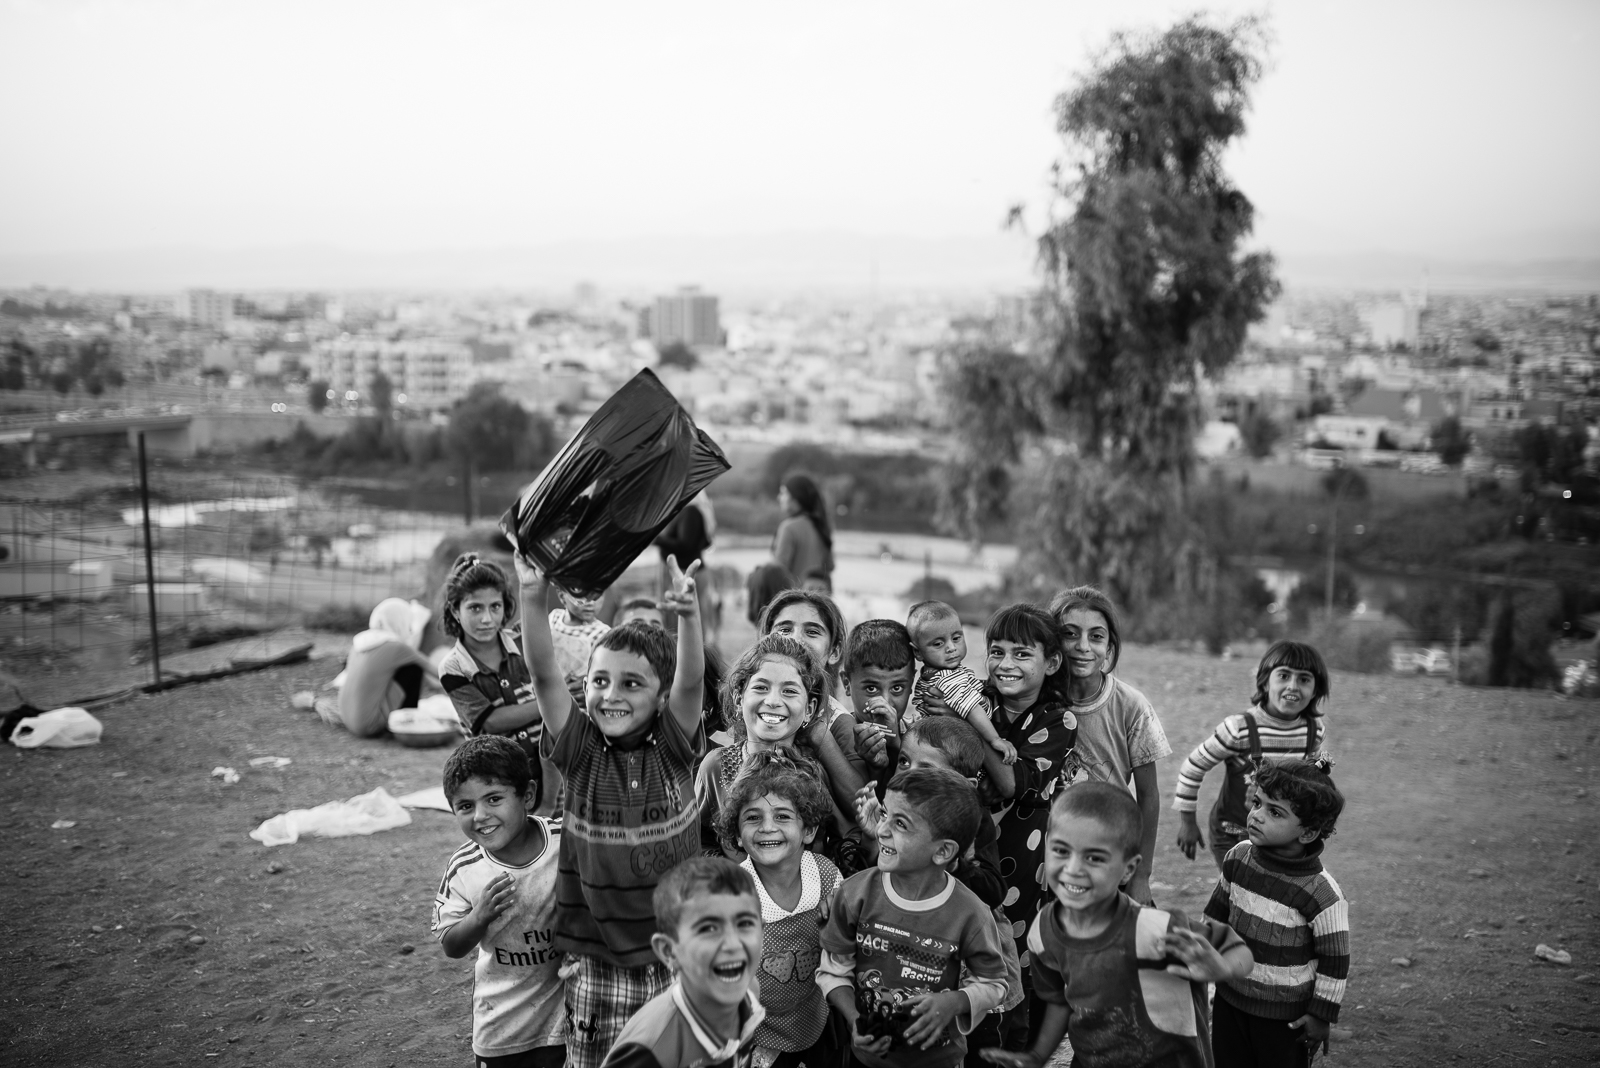 Children happiness in the Zakho's refugees camp